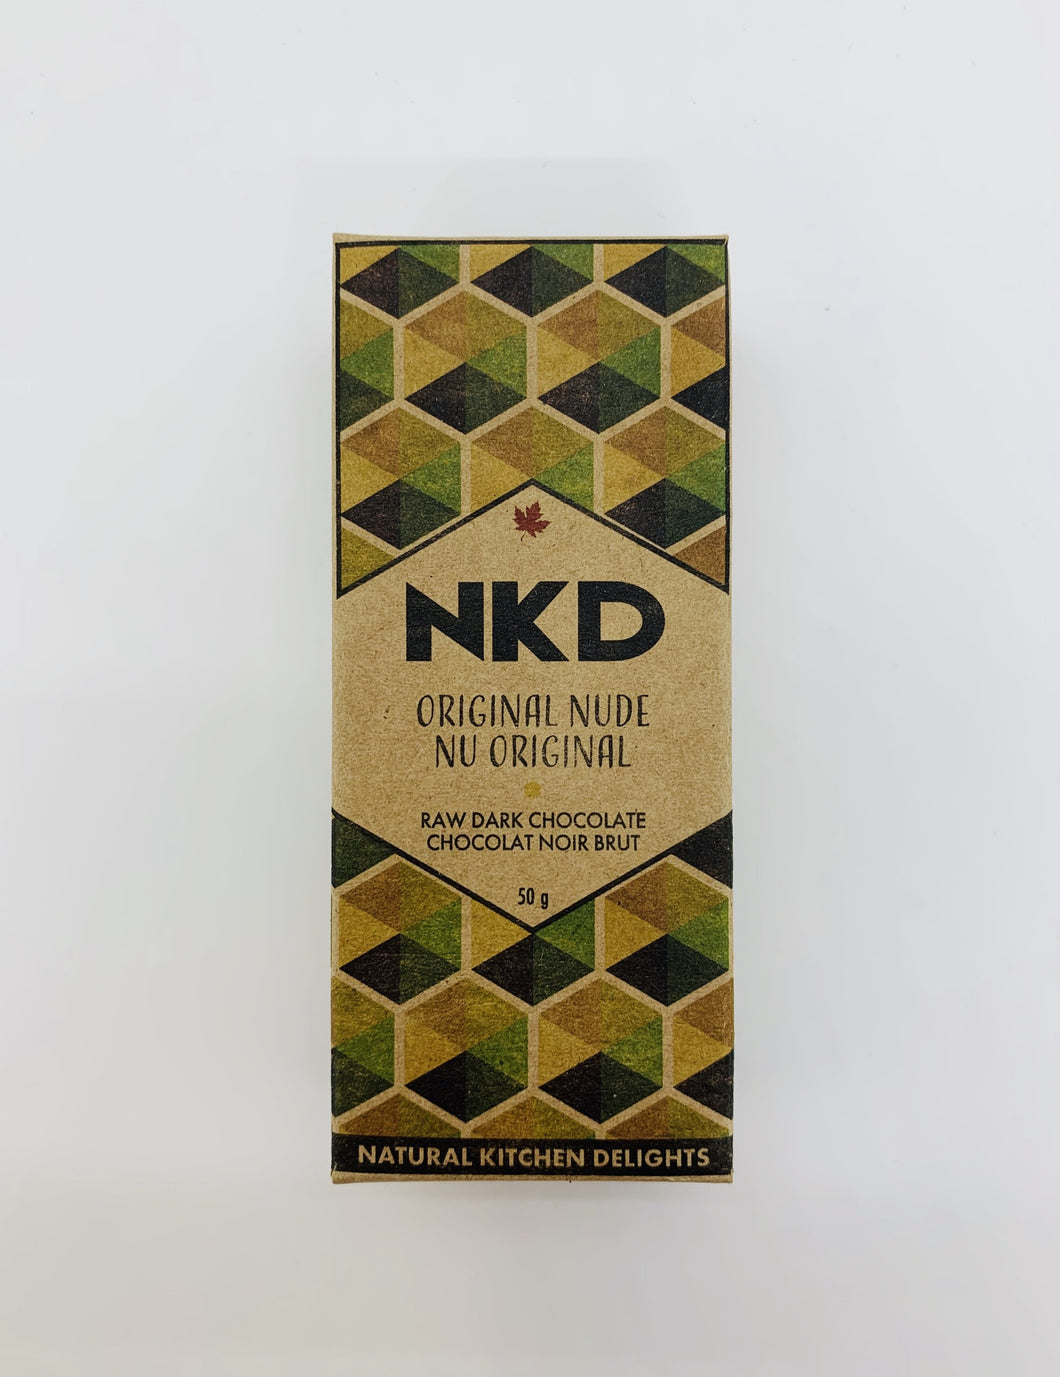 Original Nude Raw Dark Chocolate